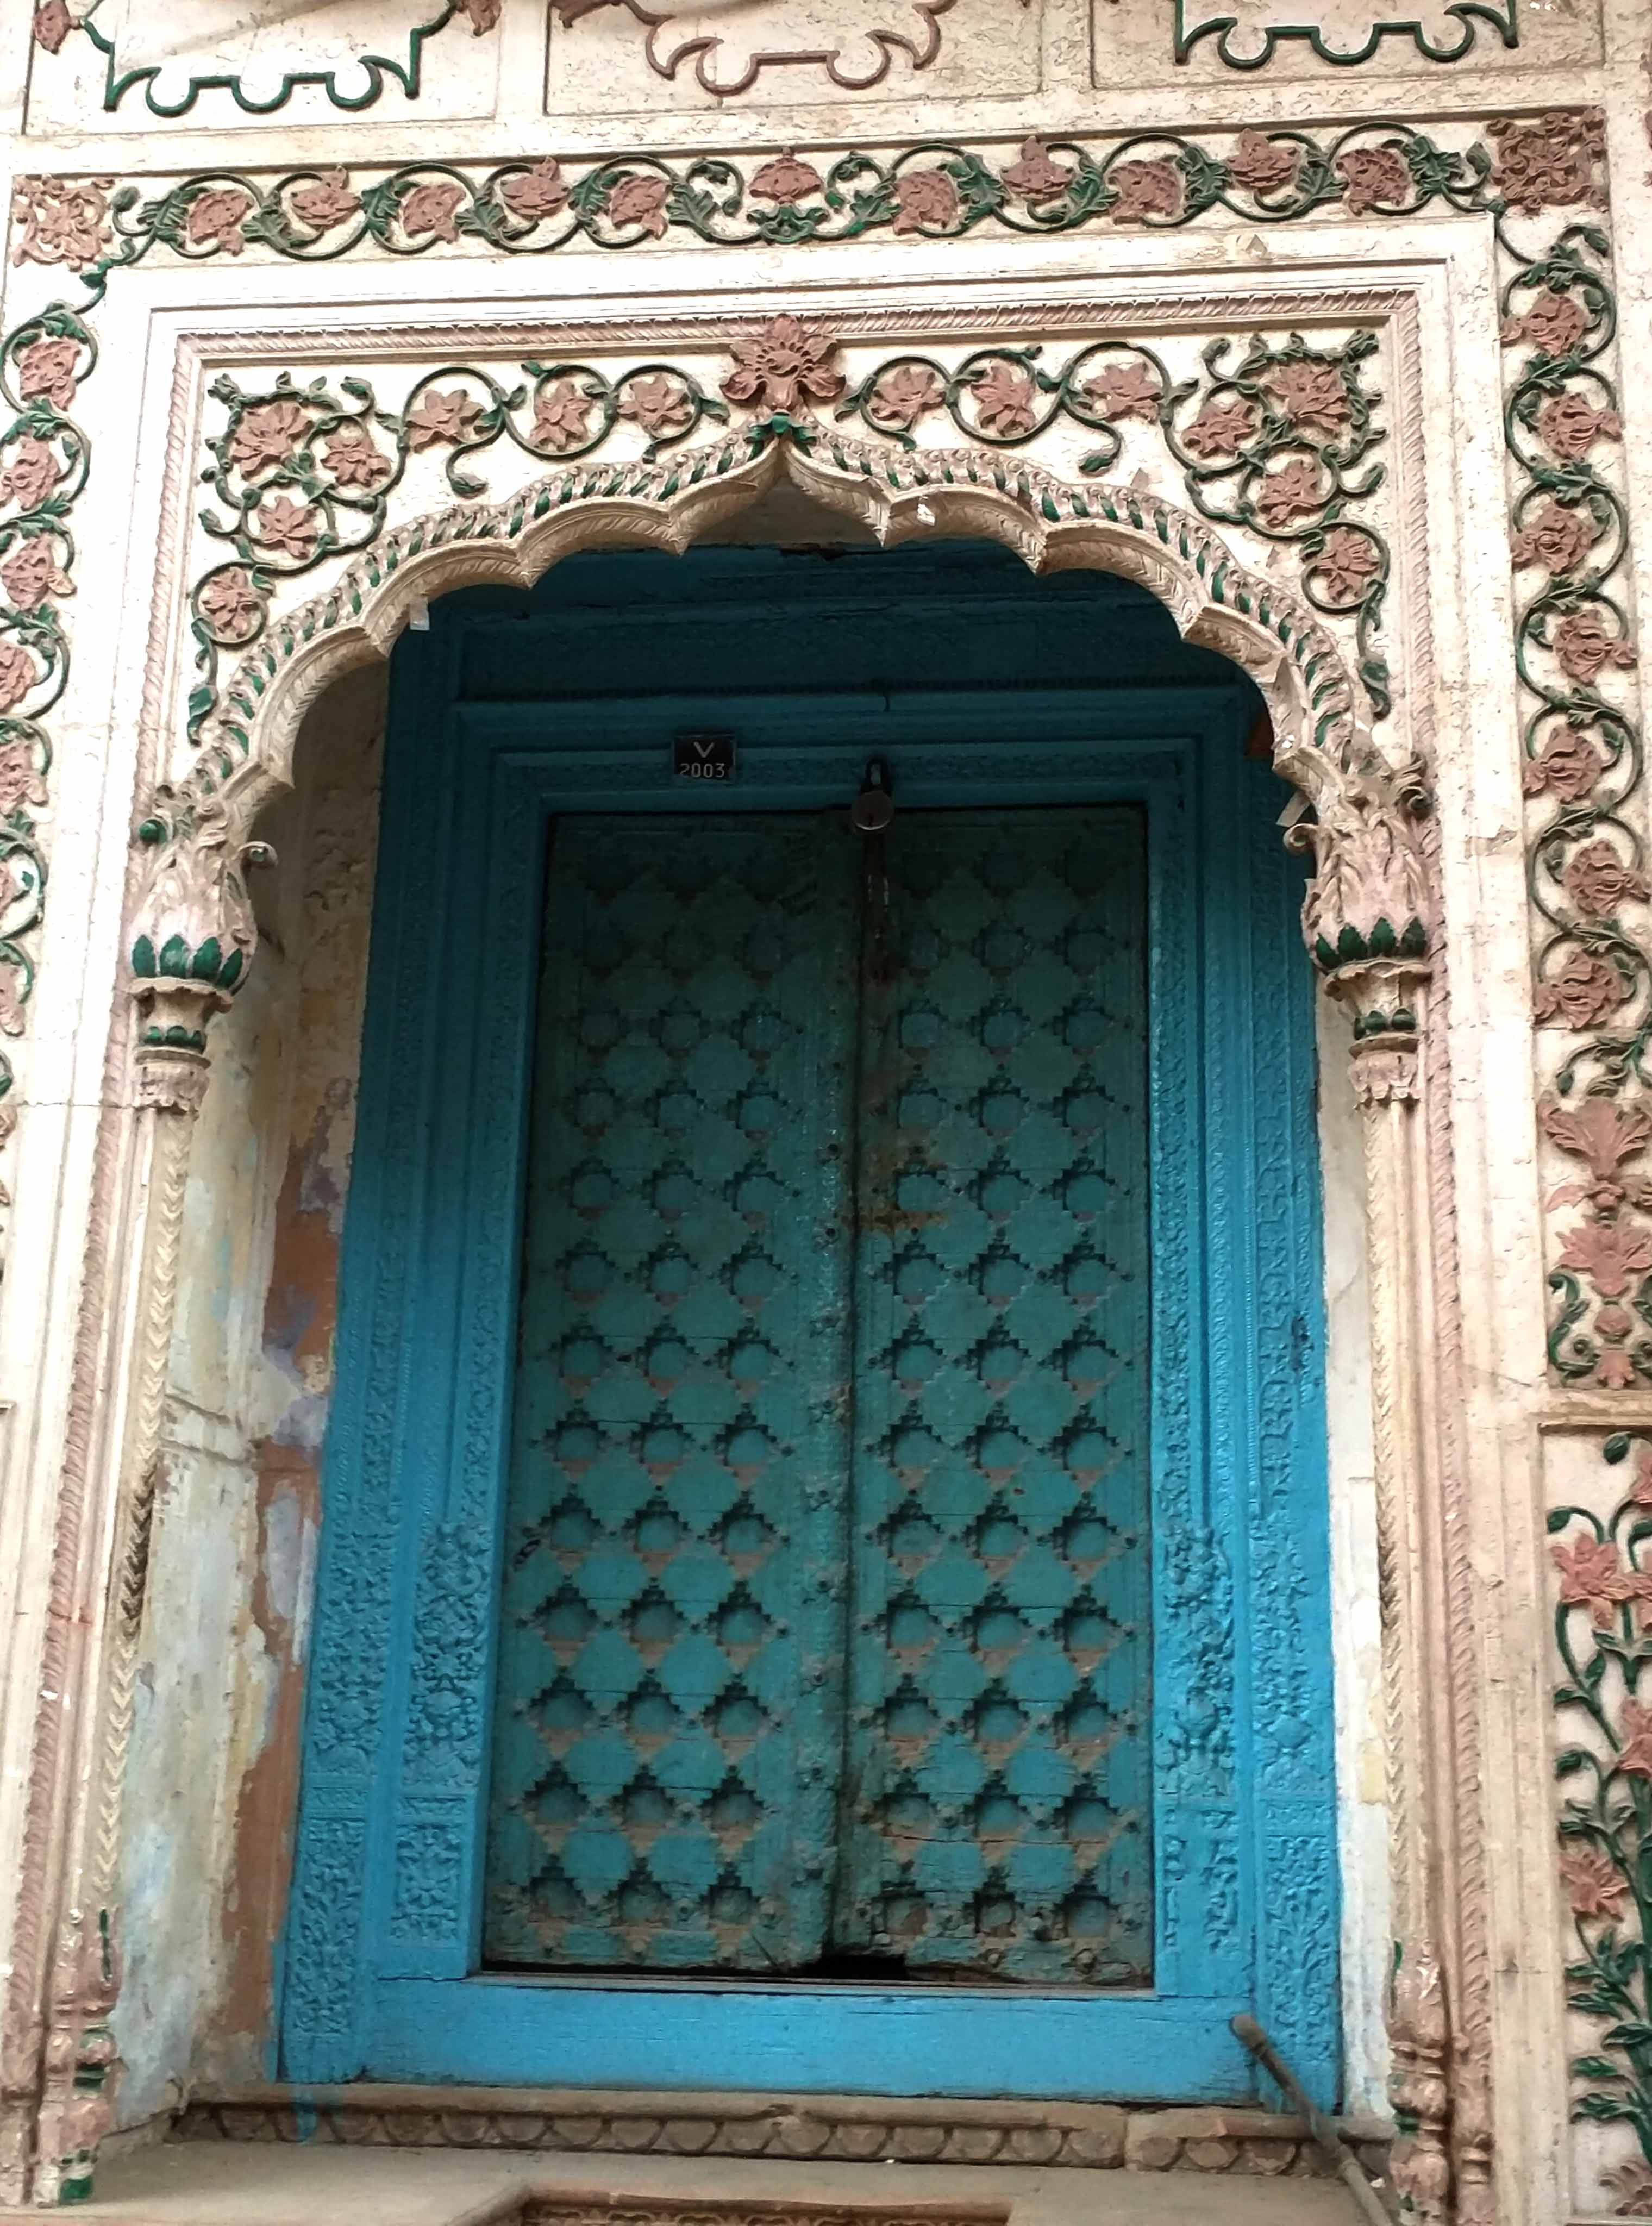 Close up of the wooden carving. & The Grand Doors Of Delhi 6 \u2013 DesiCrafts